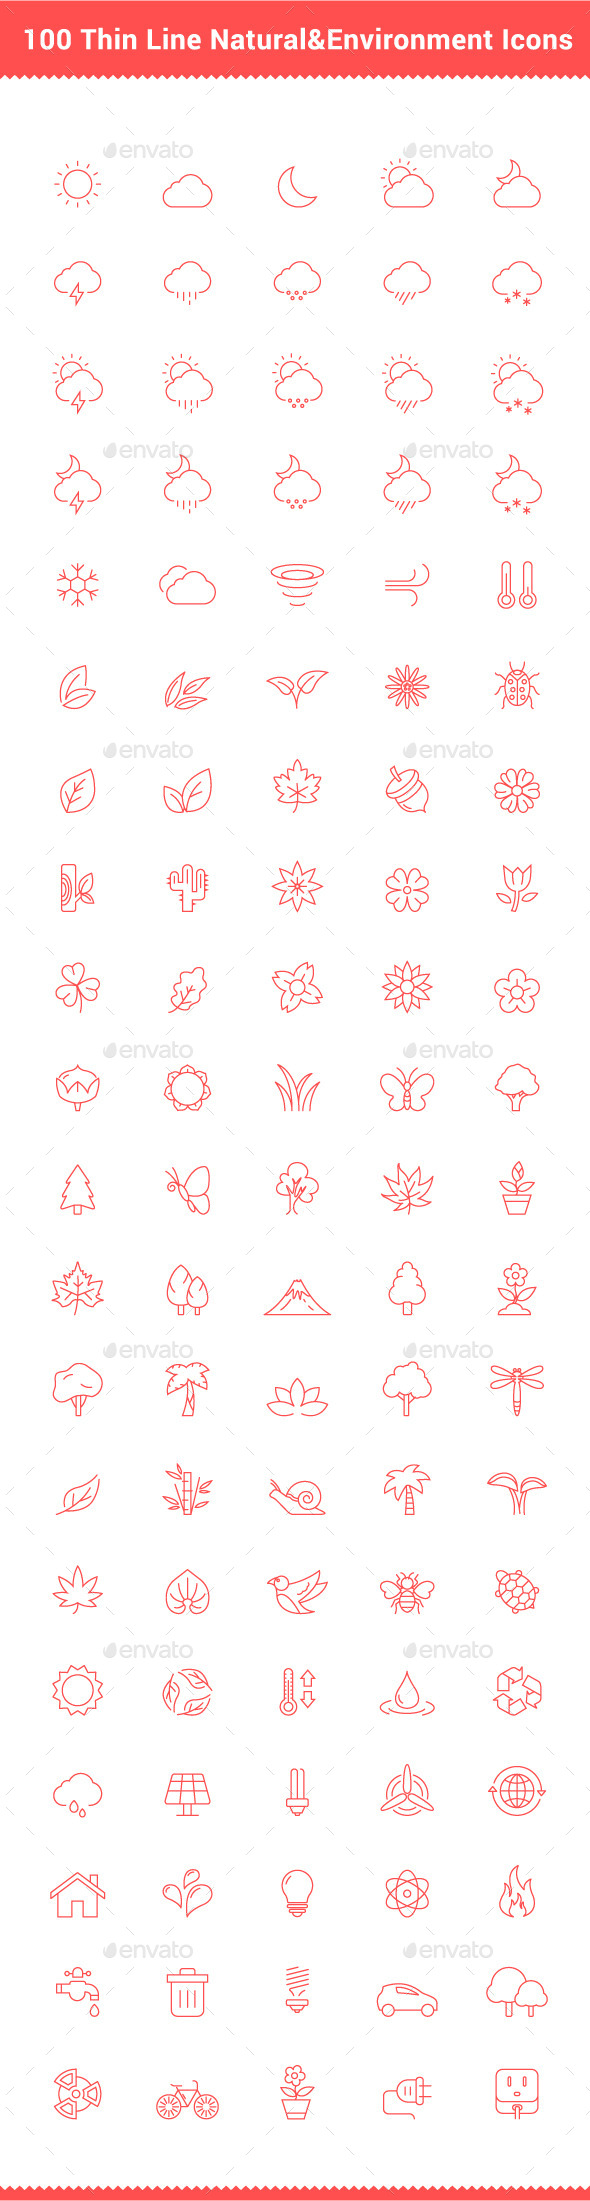 100 Thin Line Stroke Natural and Environment Icons - Icons